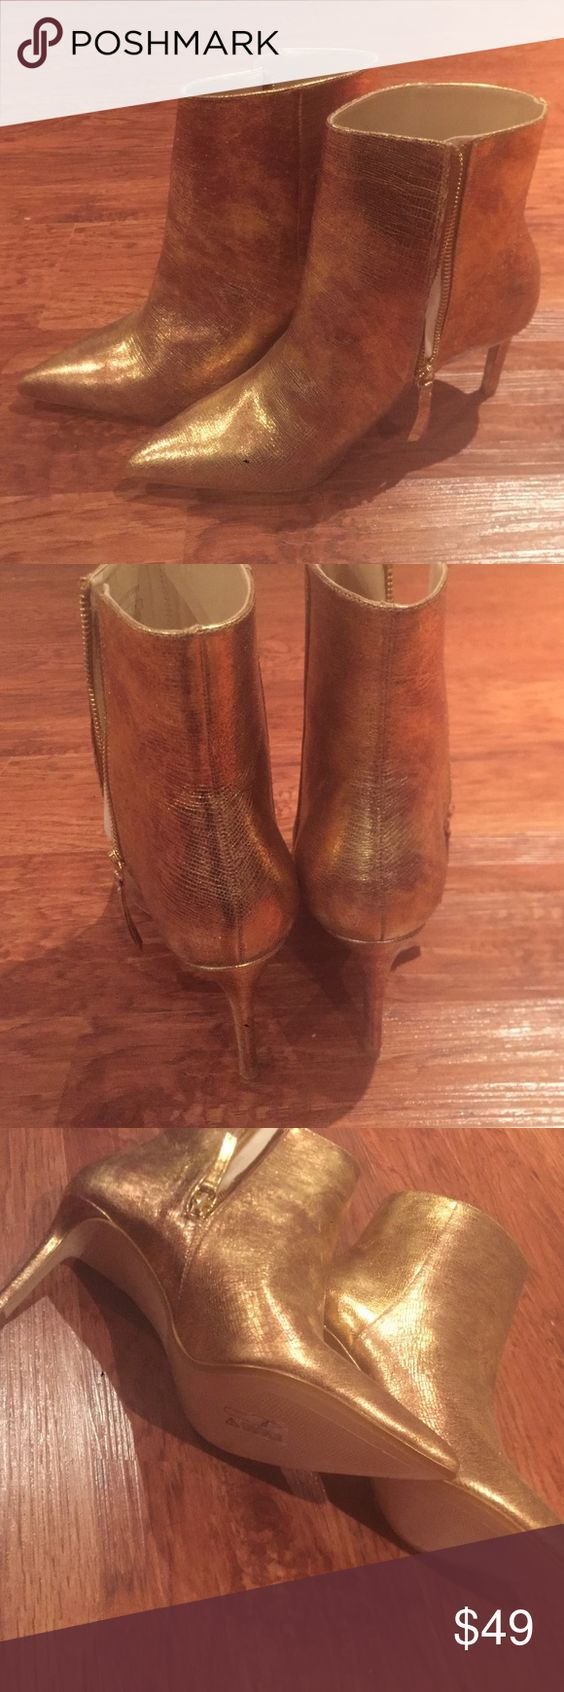 Zara gold ankle boots New never worn gold metallic ankle boots Zara Shoes Ankle Boots & Booties